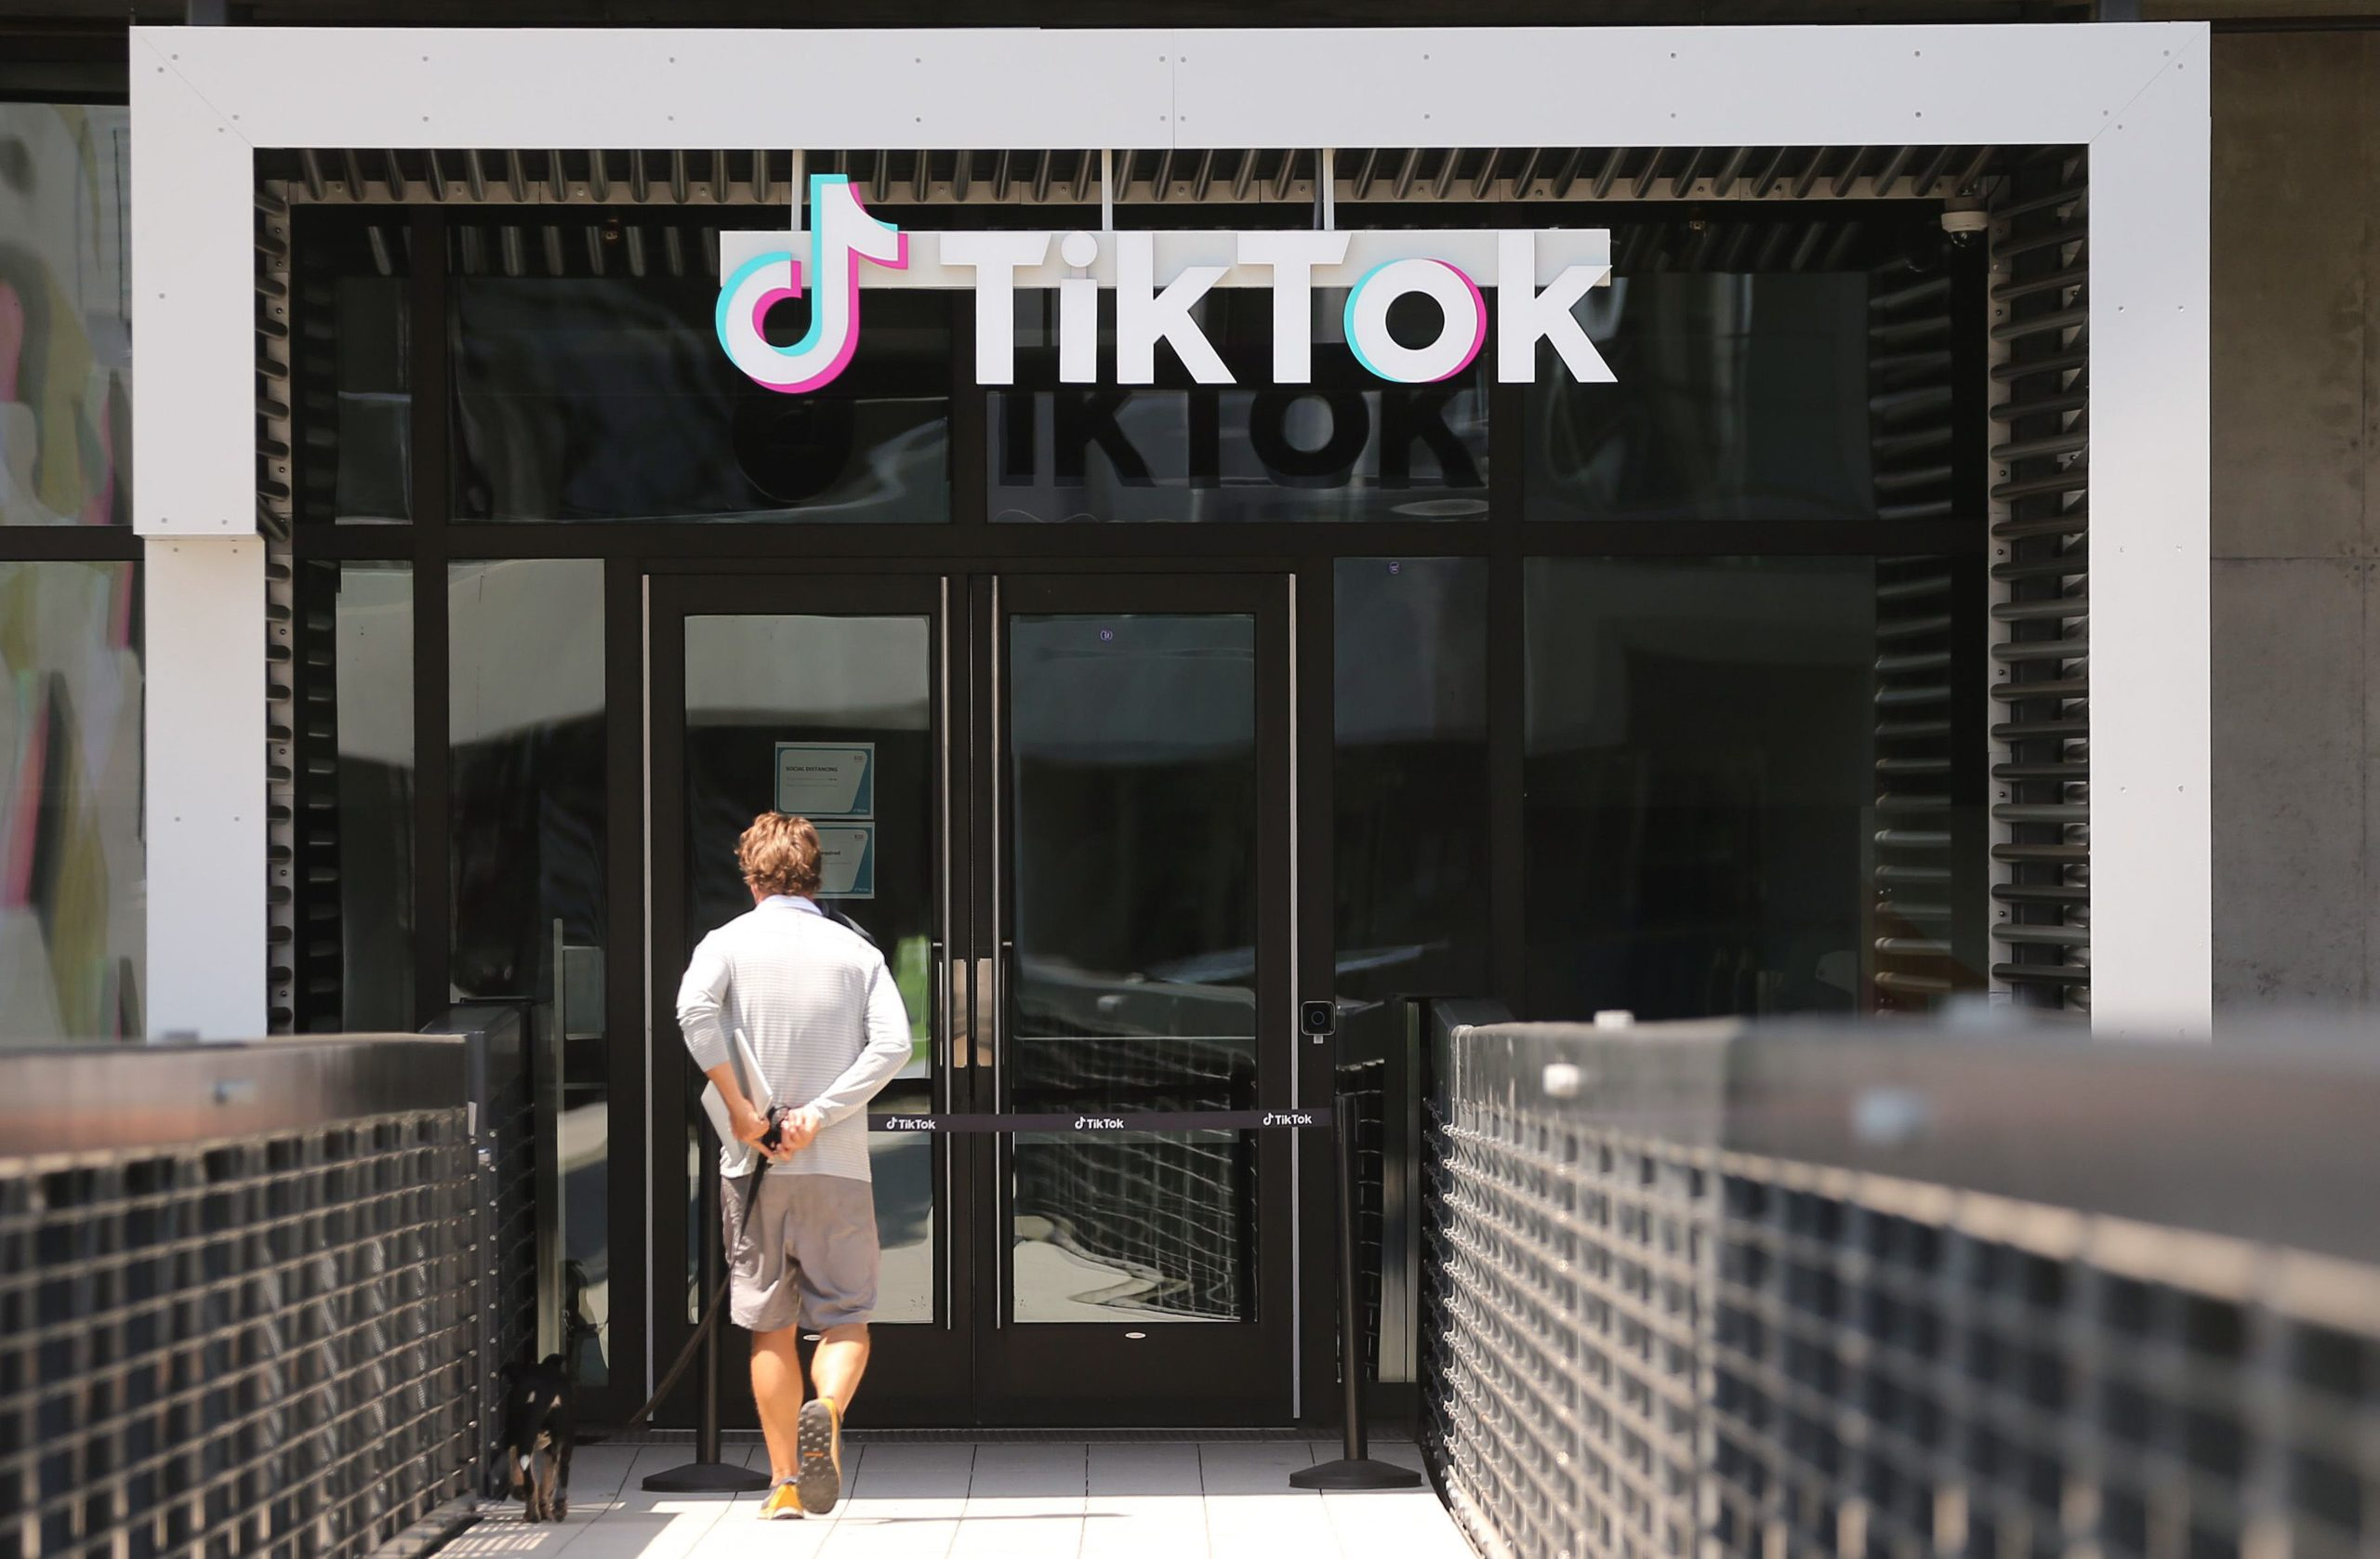 The TikTok logo is displayed in front of a TikTok office on August 27, 2020 in Culver City, California. (Photo by Mario Tama/Getty Images)